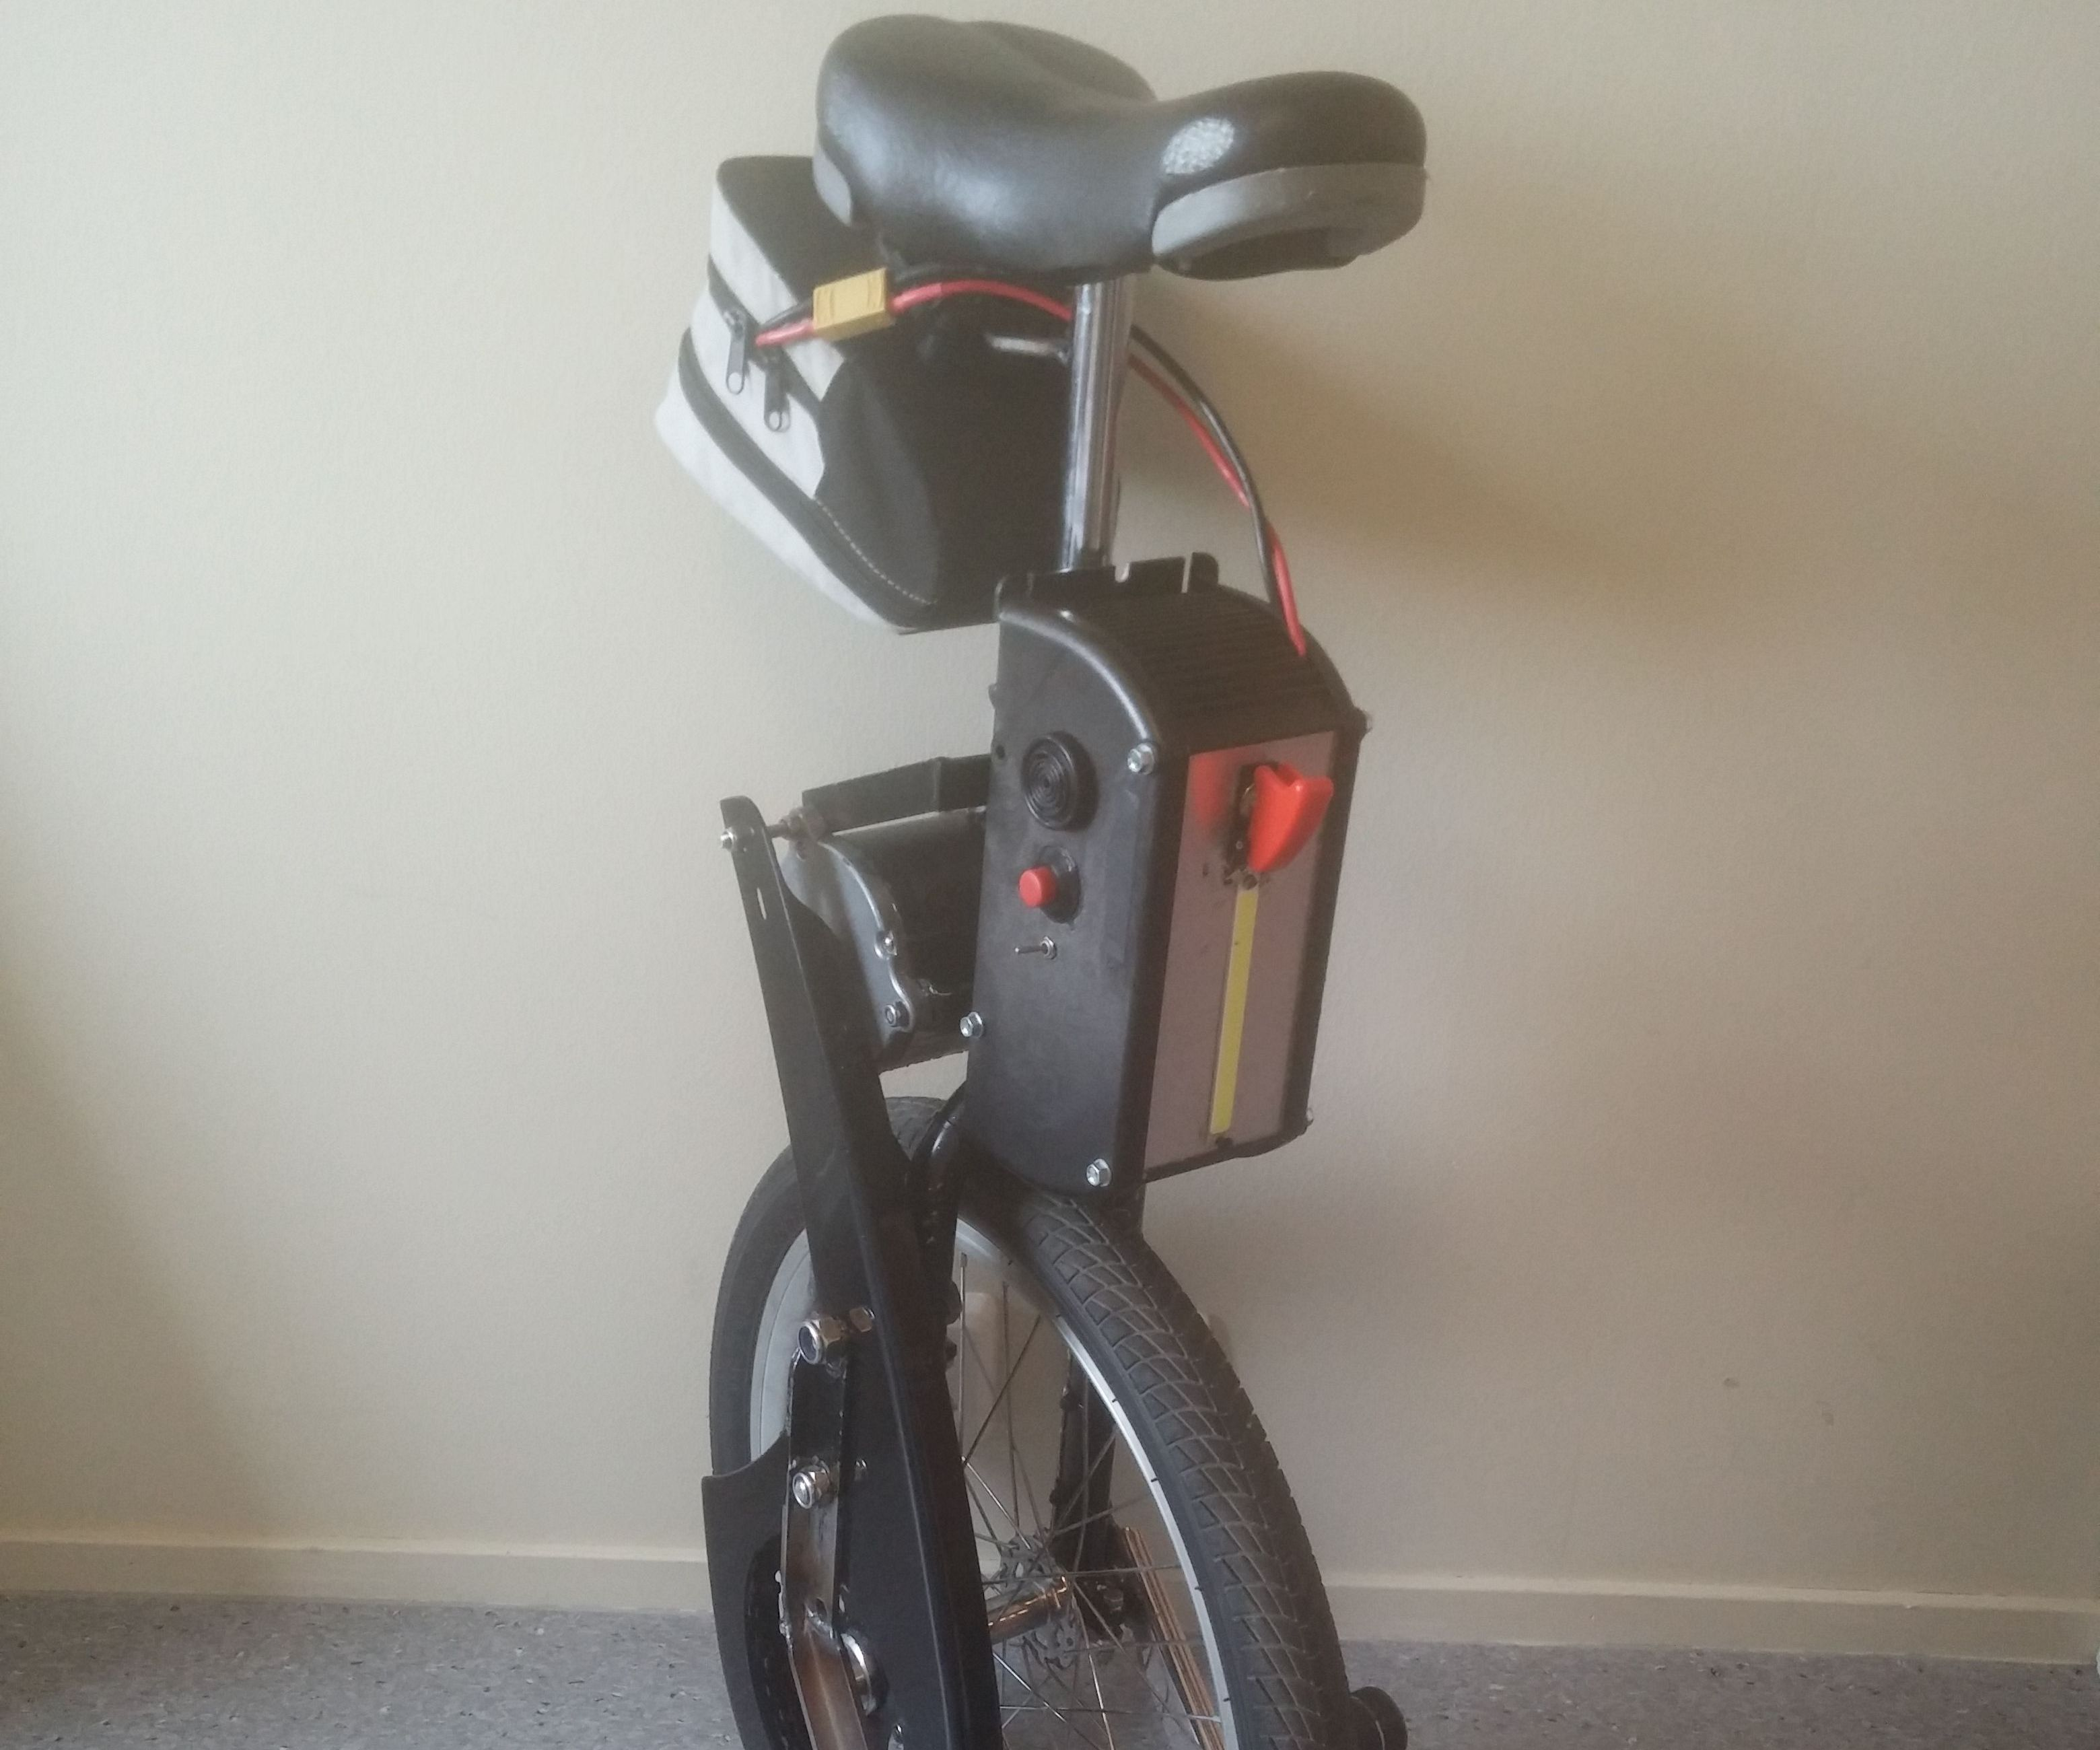 Electric unicycle Arduino DIY